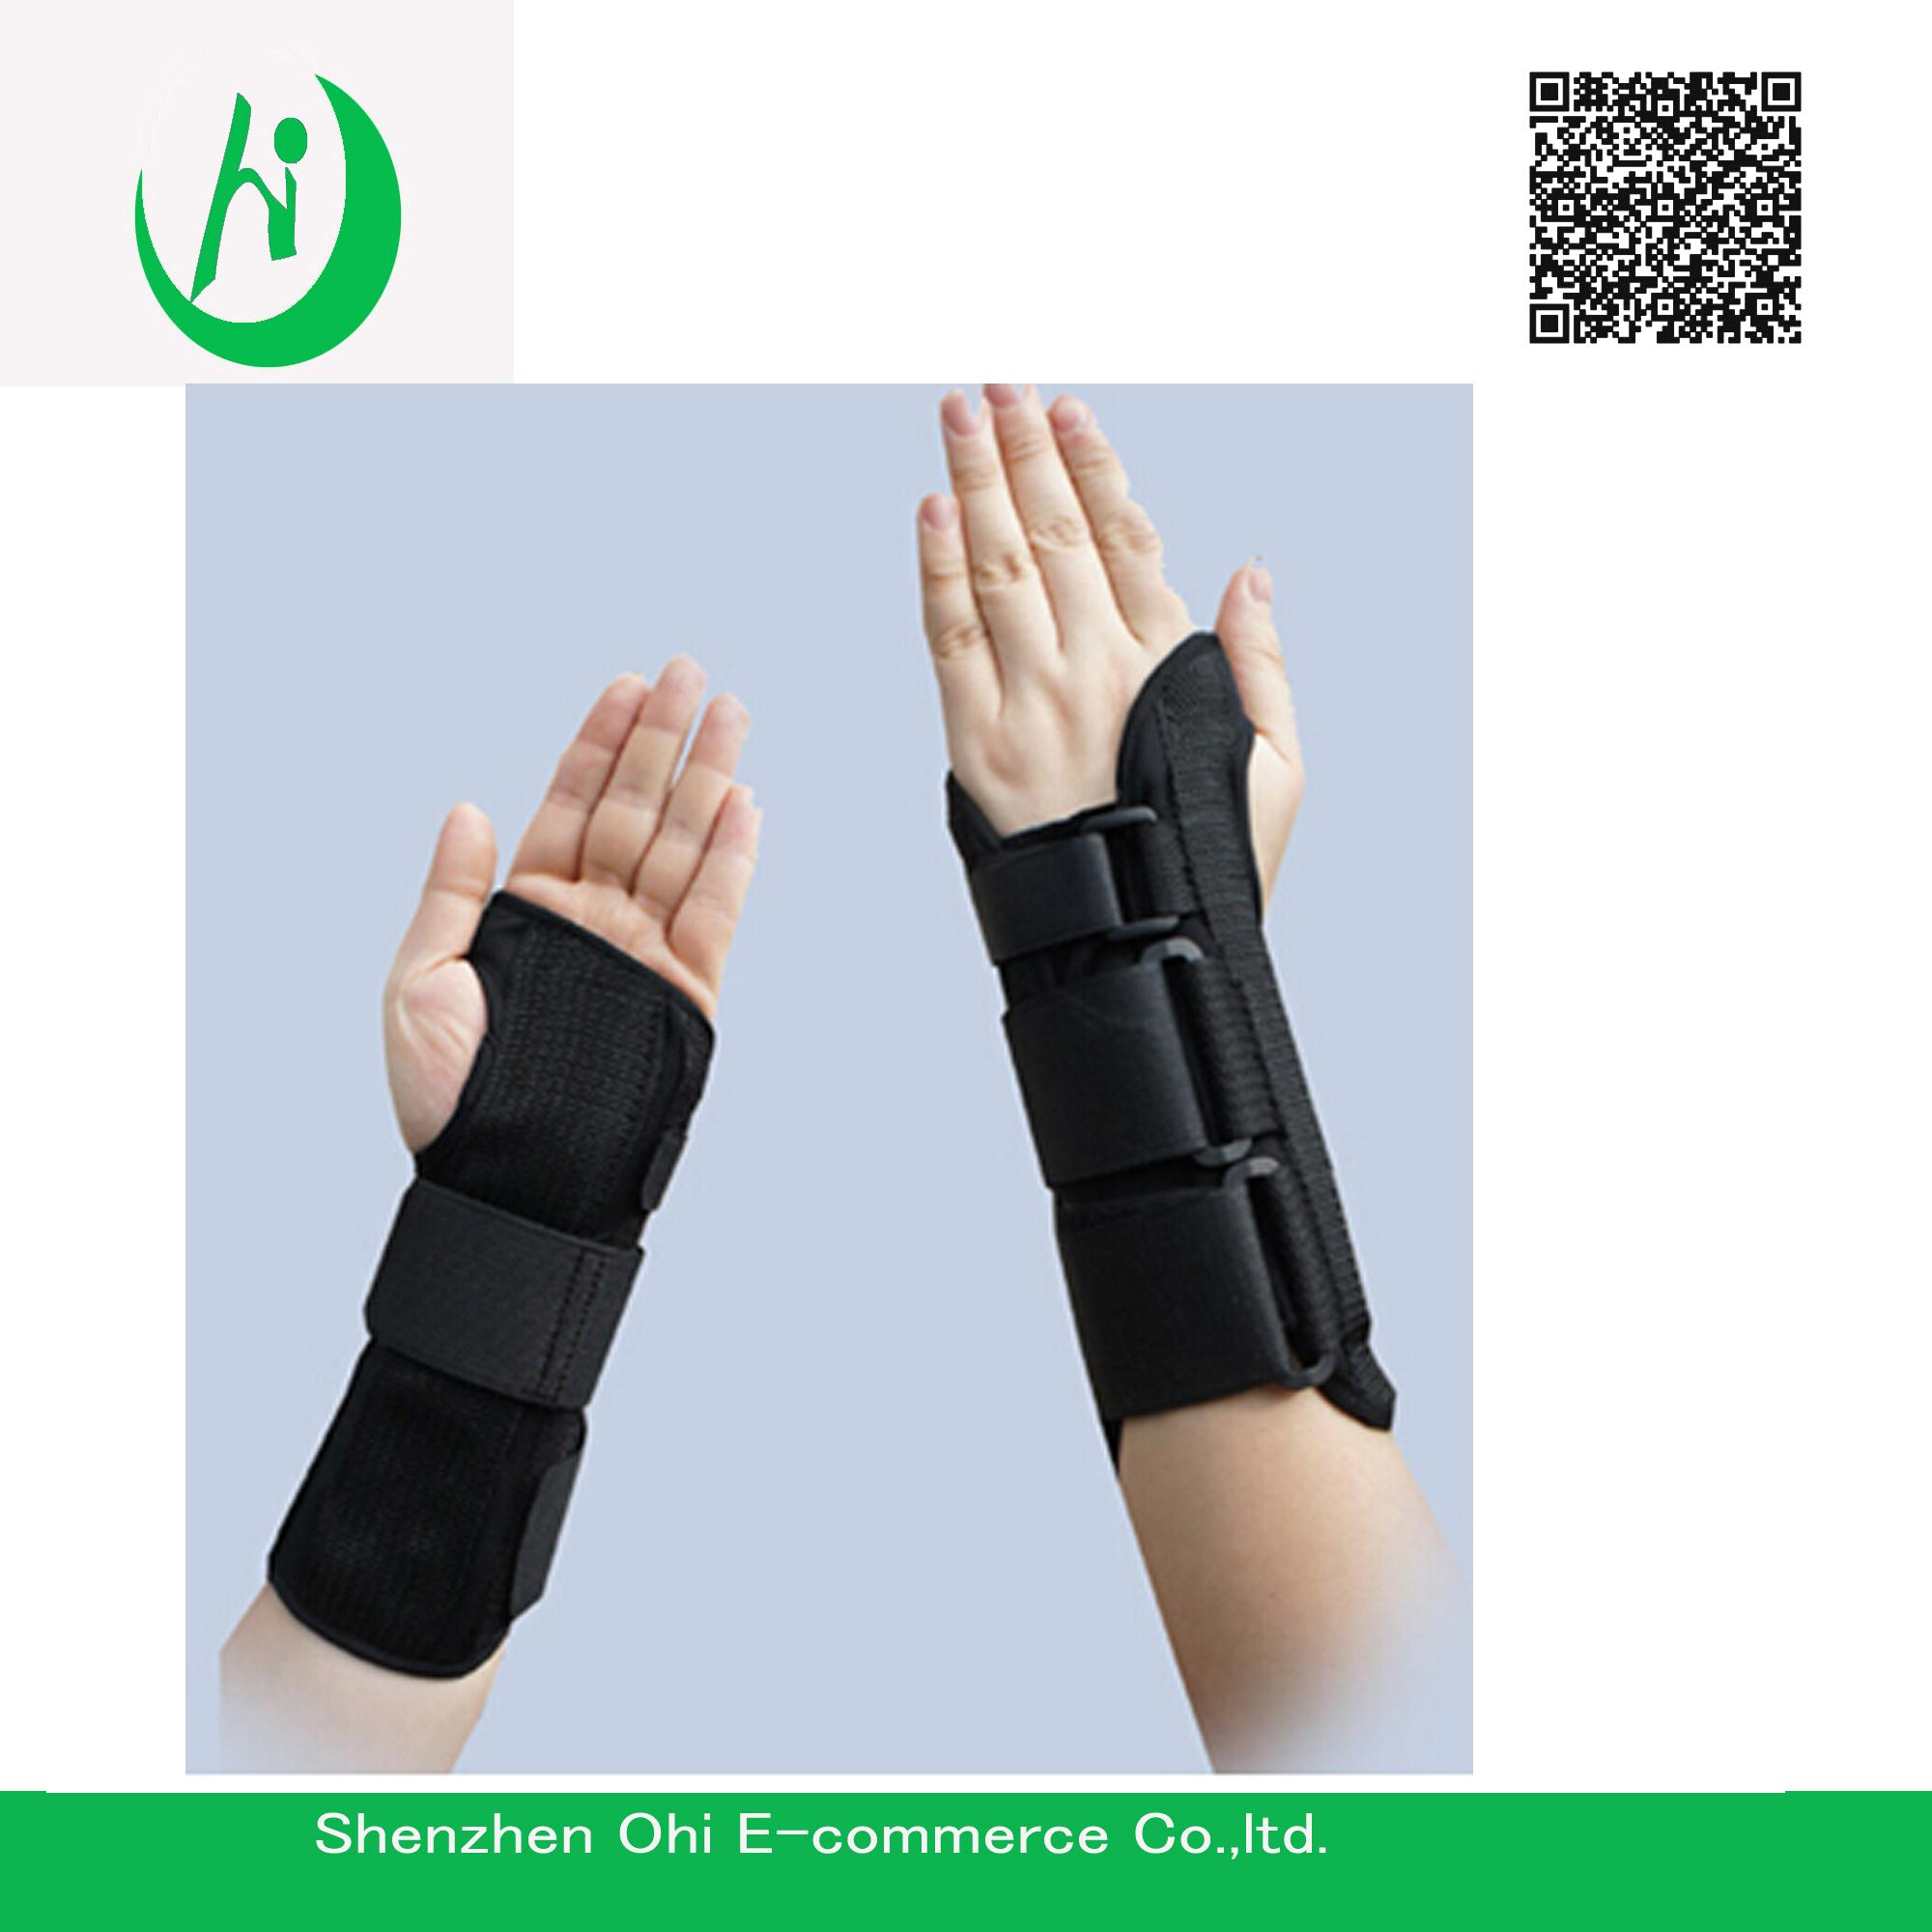 Motorcycle gloves carpal tunnel syndrome - Wrist Support Brace Splint Carpal Tunnel Syndrome Wrist And Forearm Support